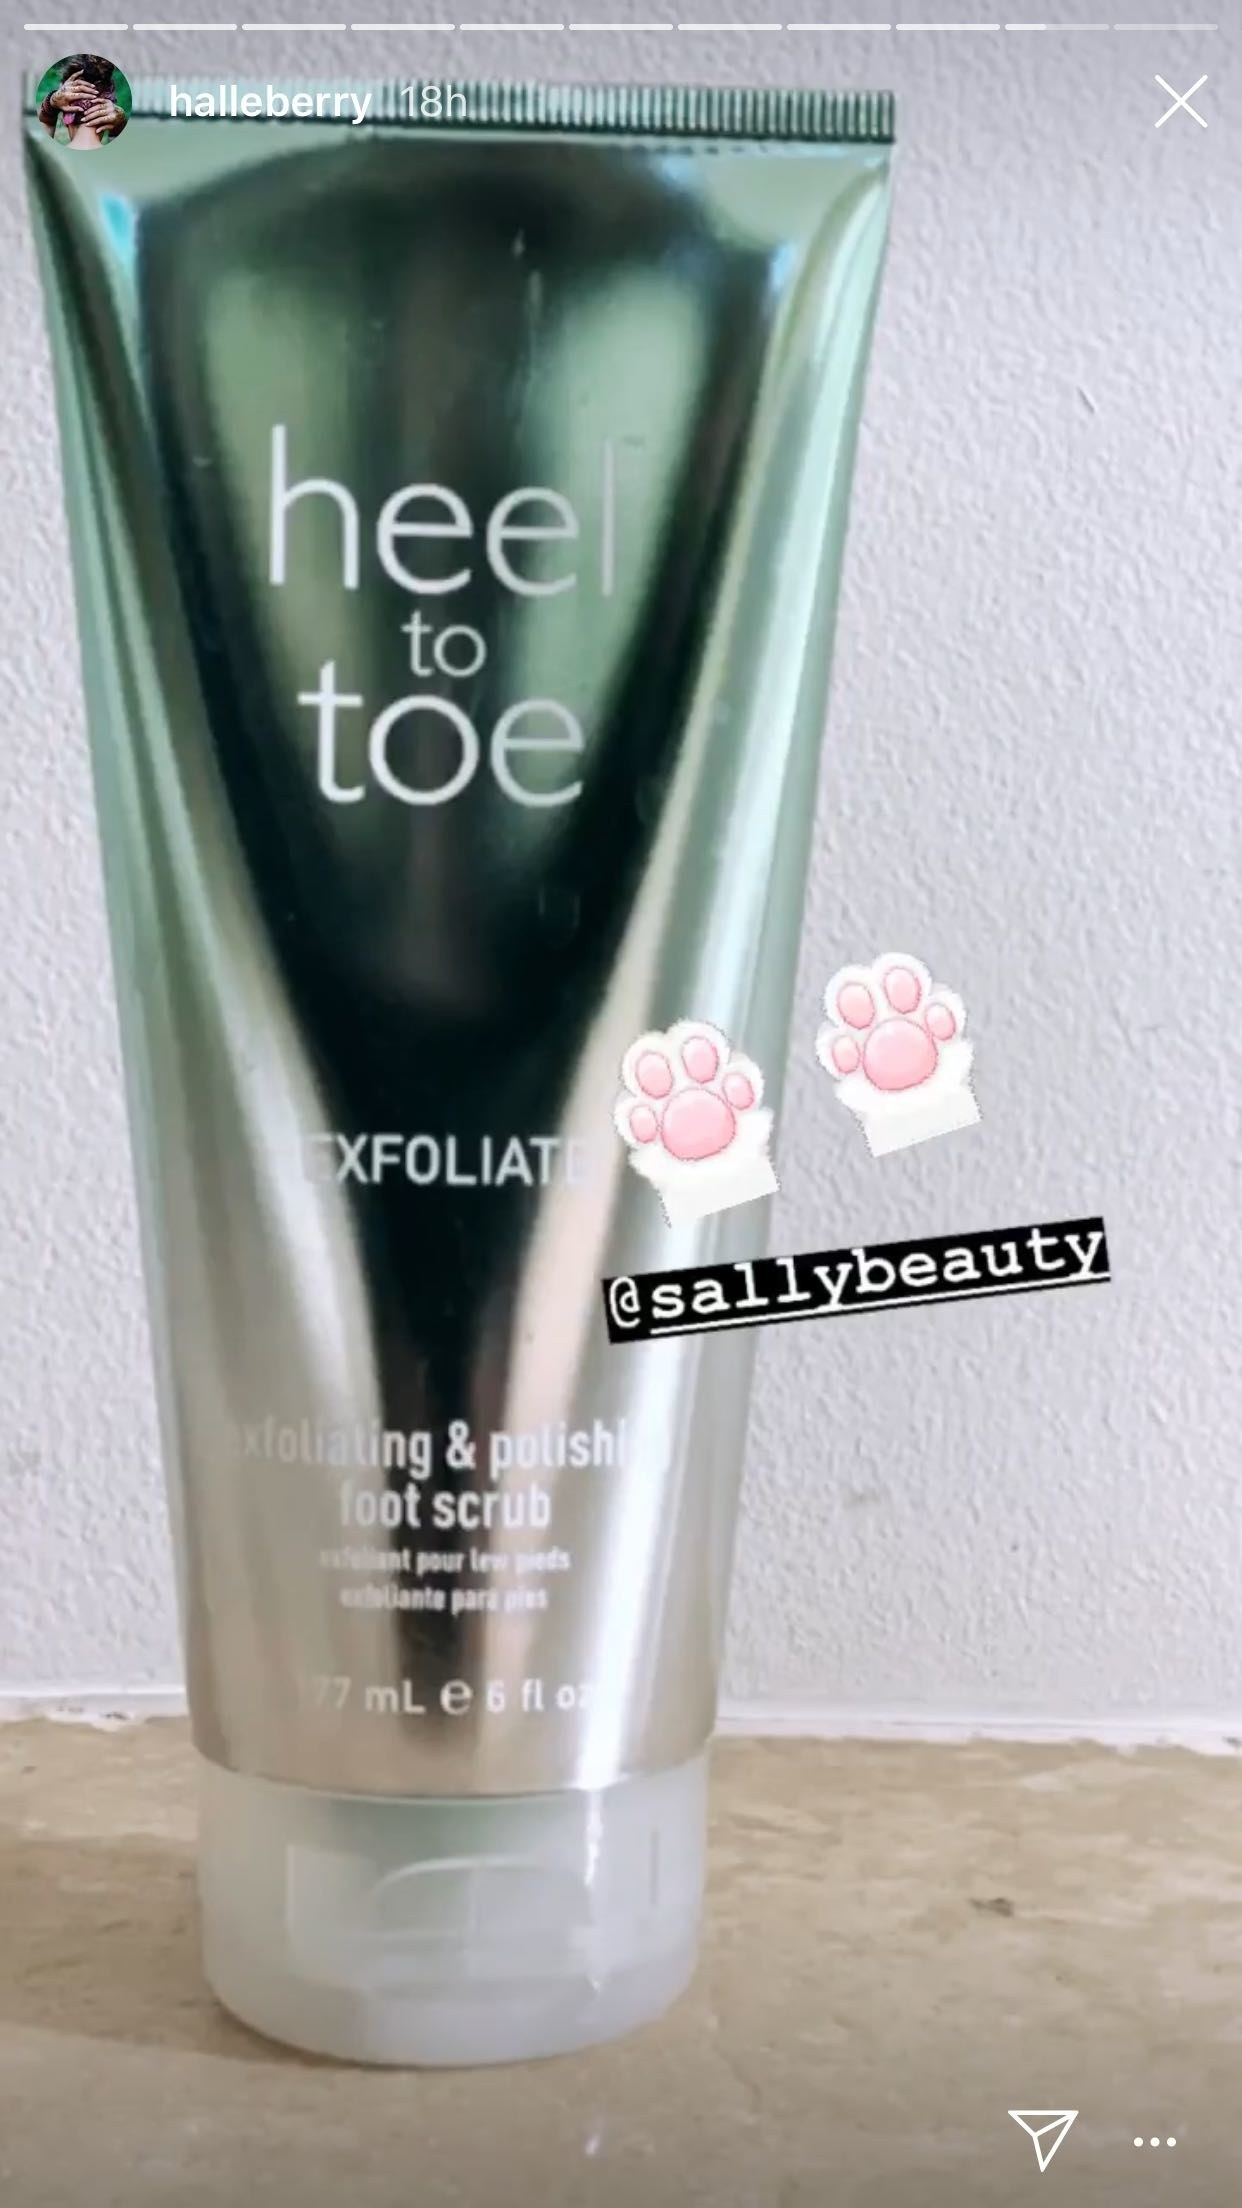 Heel to toe Exfoliate Body Scrub